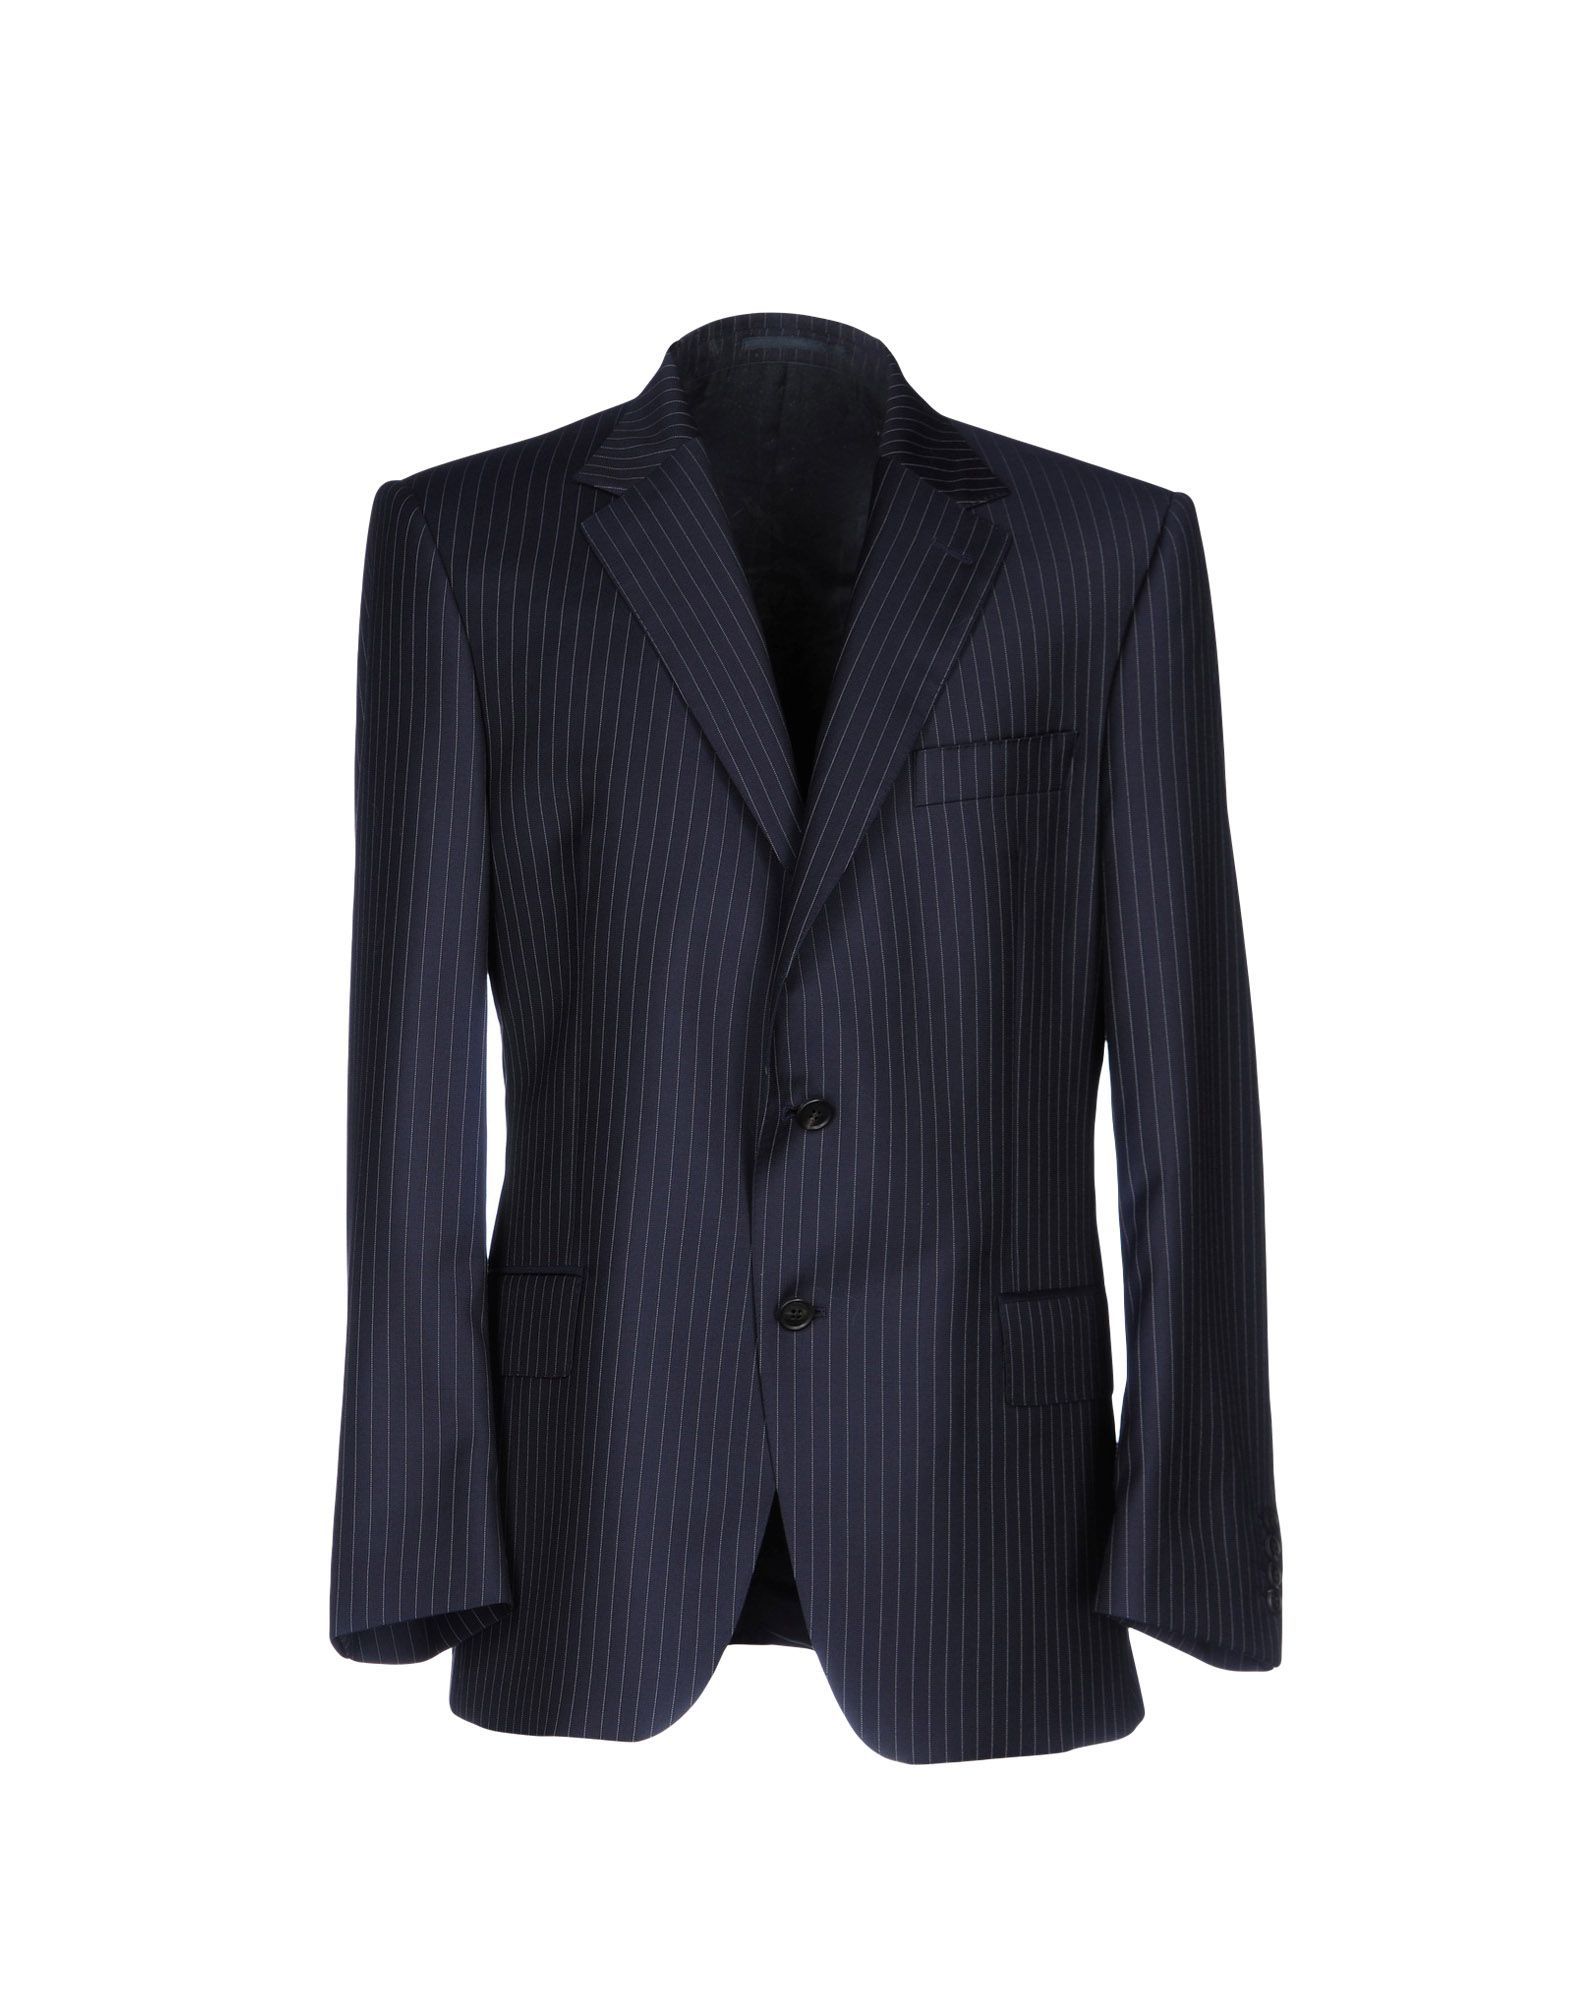 Giacca Gieves & Hawkes Uomo - Acquista online su